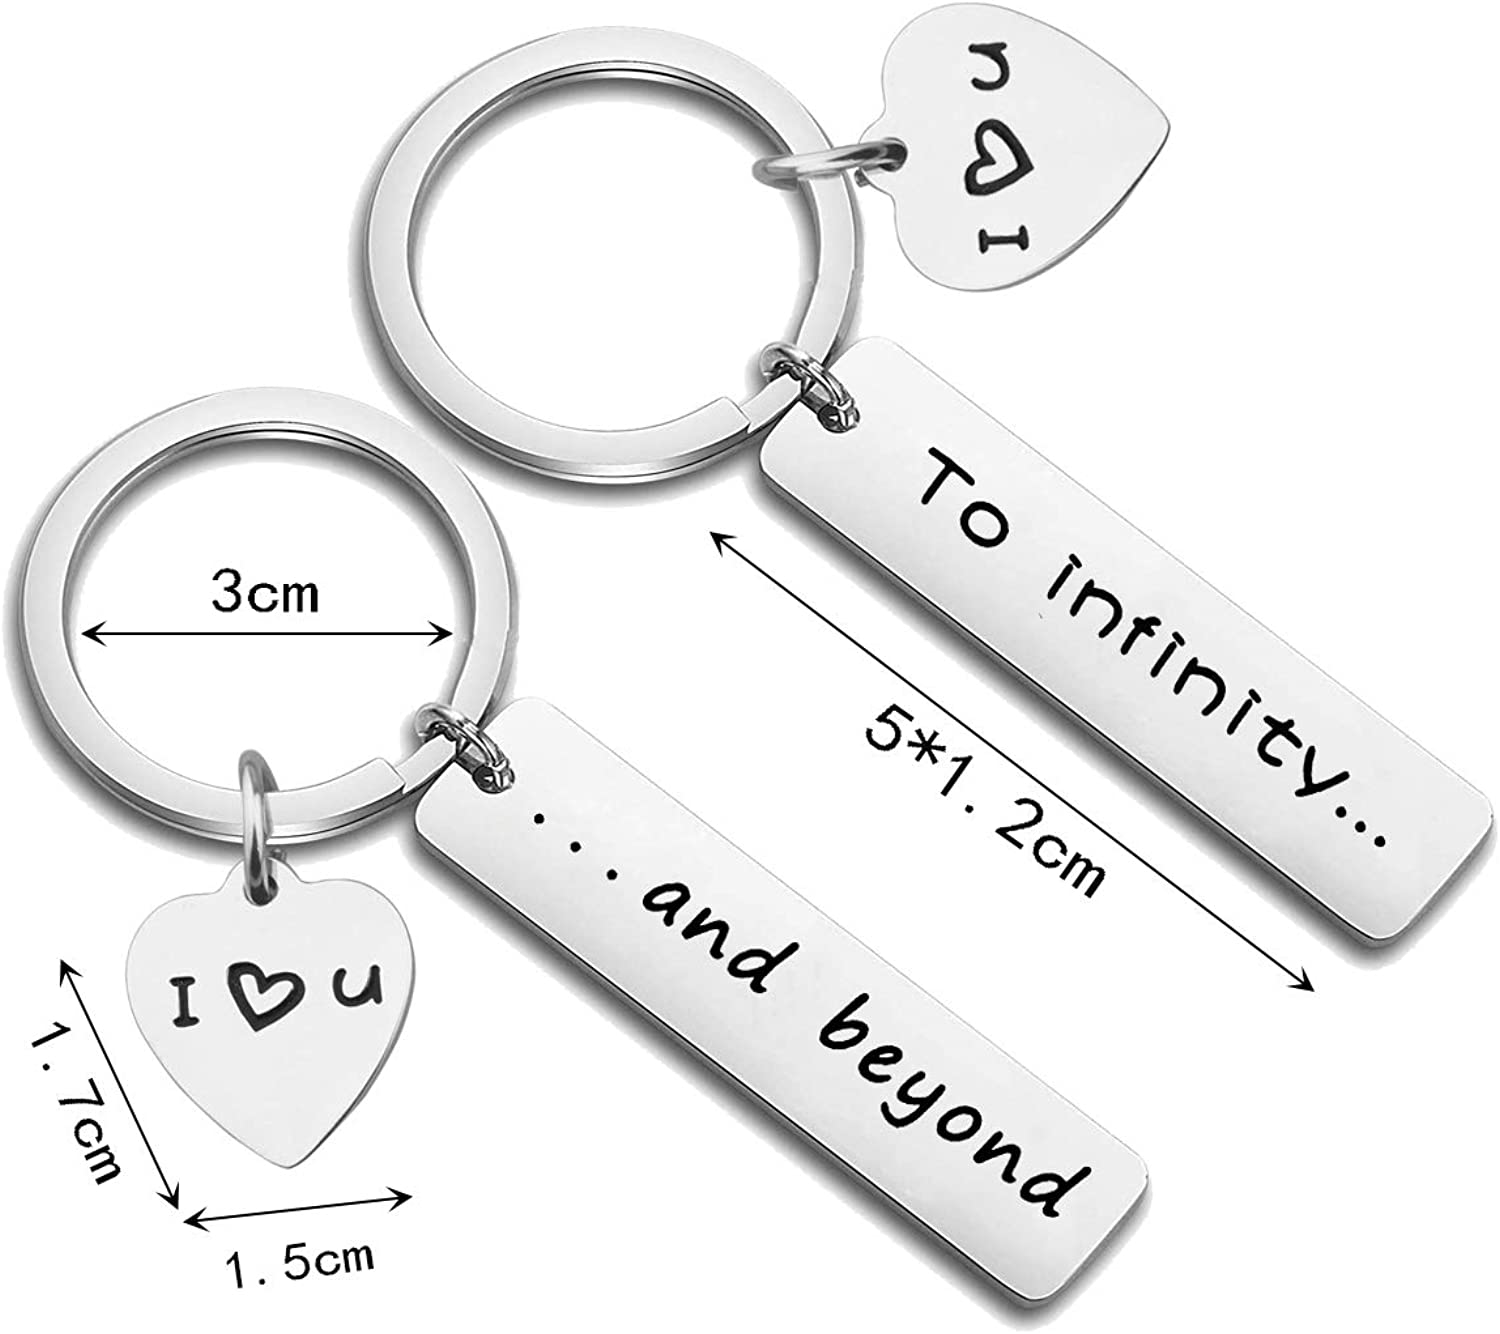 his and hers keychains To infinity and beyond  Couples Keychain Set mother/'s day gift matching keychains